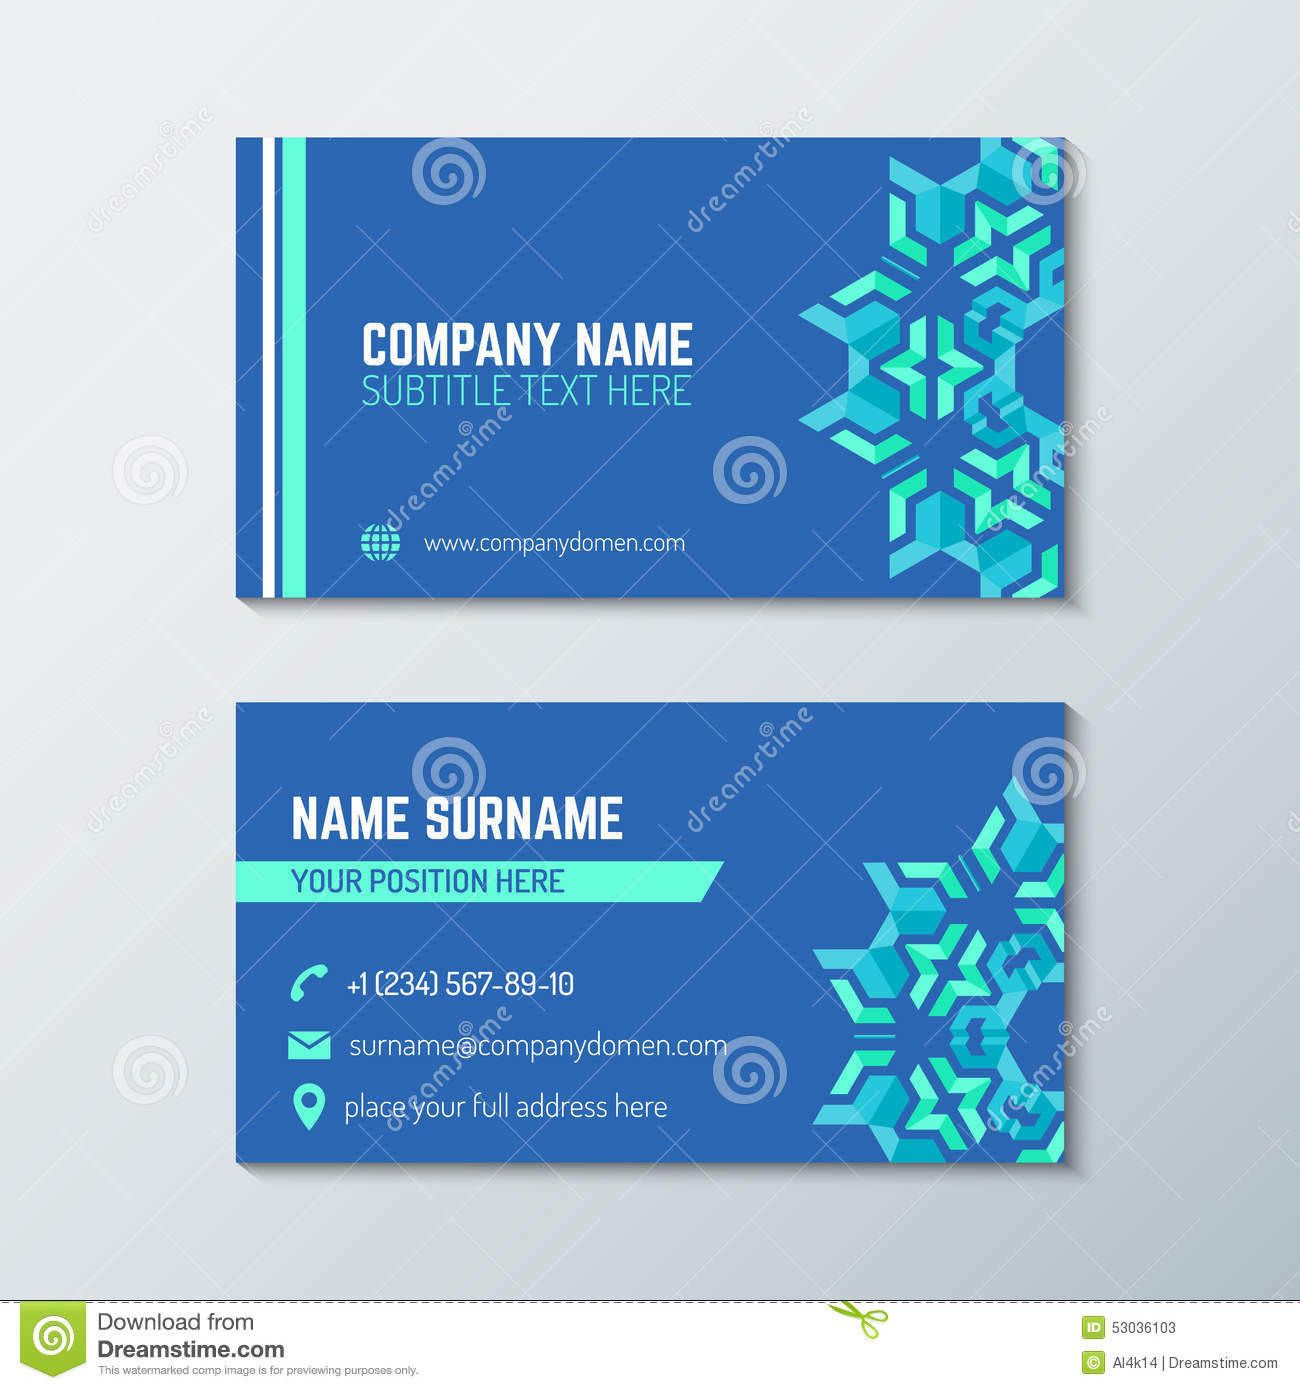 Blue green abstract business card template stock vector download blue green abstract business card template stock vector illustration of modern business colourmoves